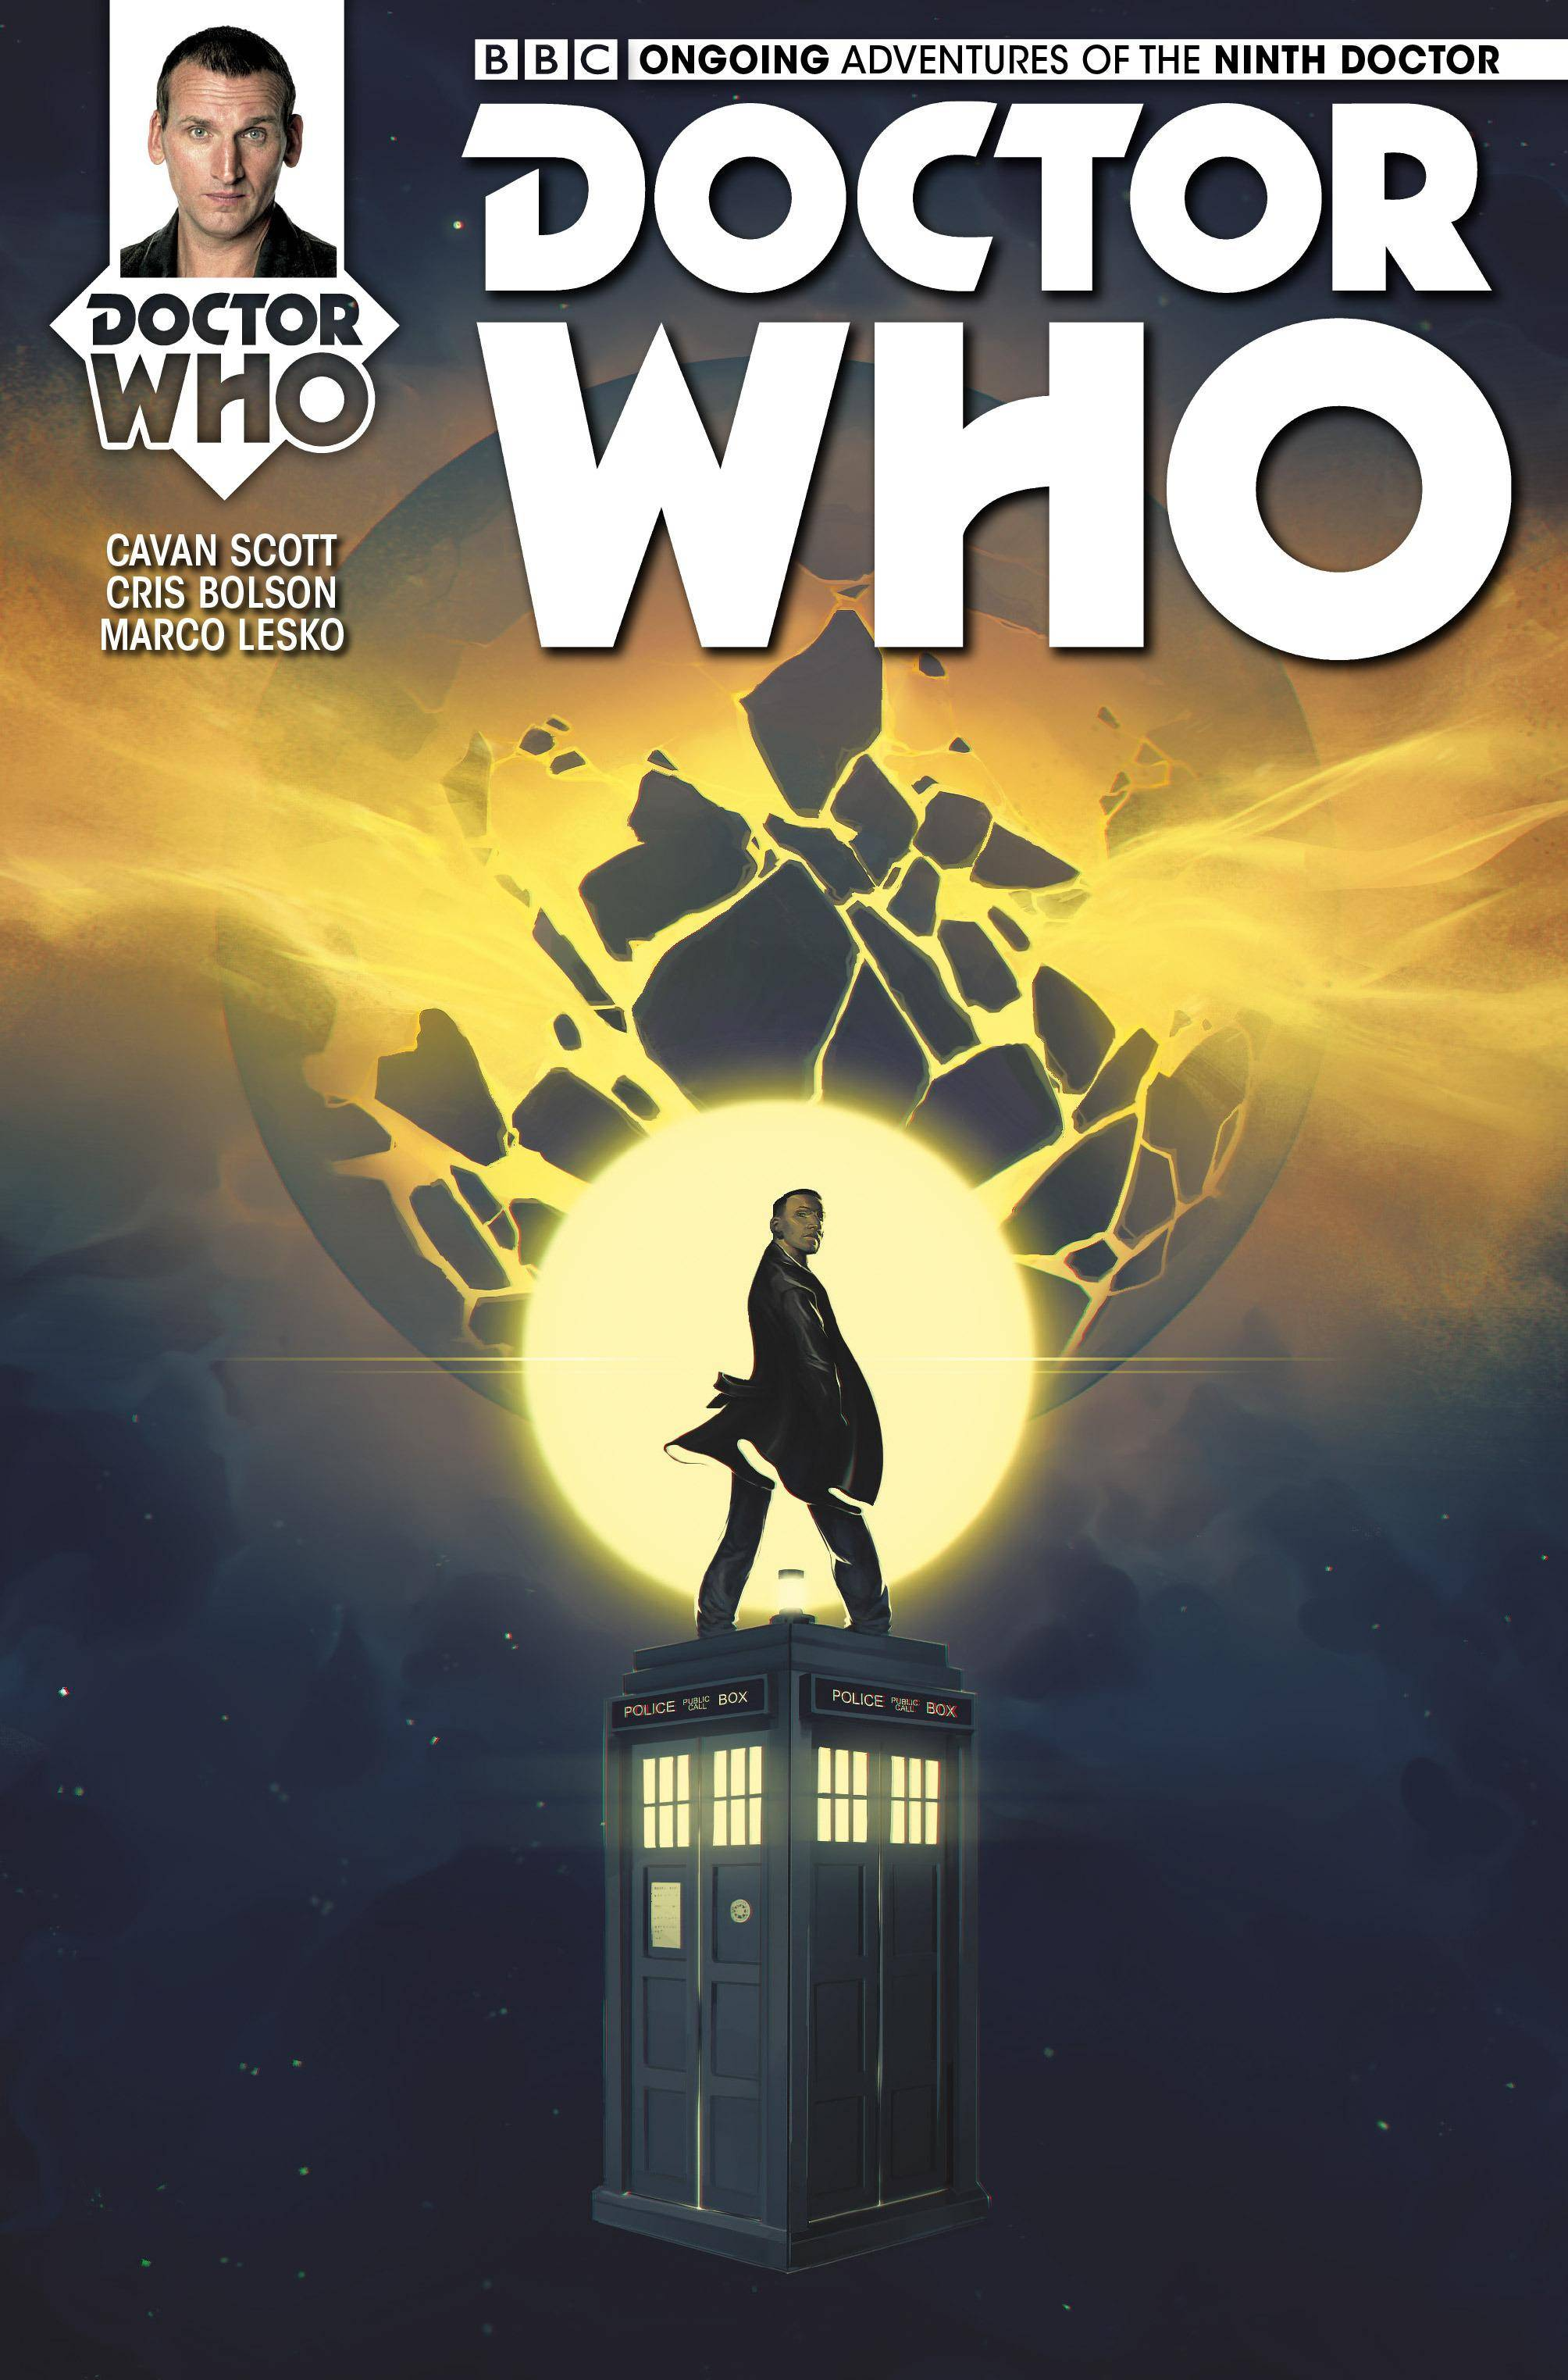 Doctor Who The Ninth Doctor 004 2016 4 covers Digital TLK-EMPIRE-HD